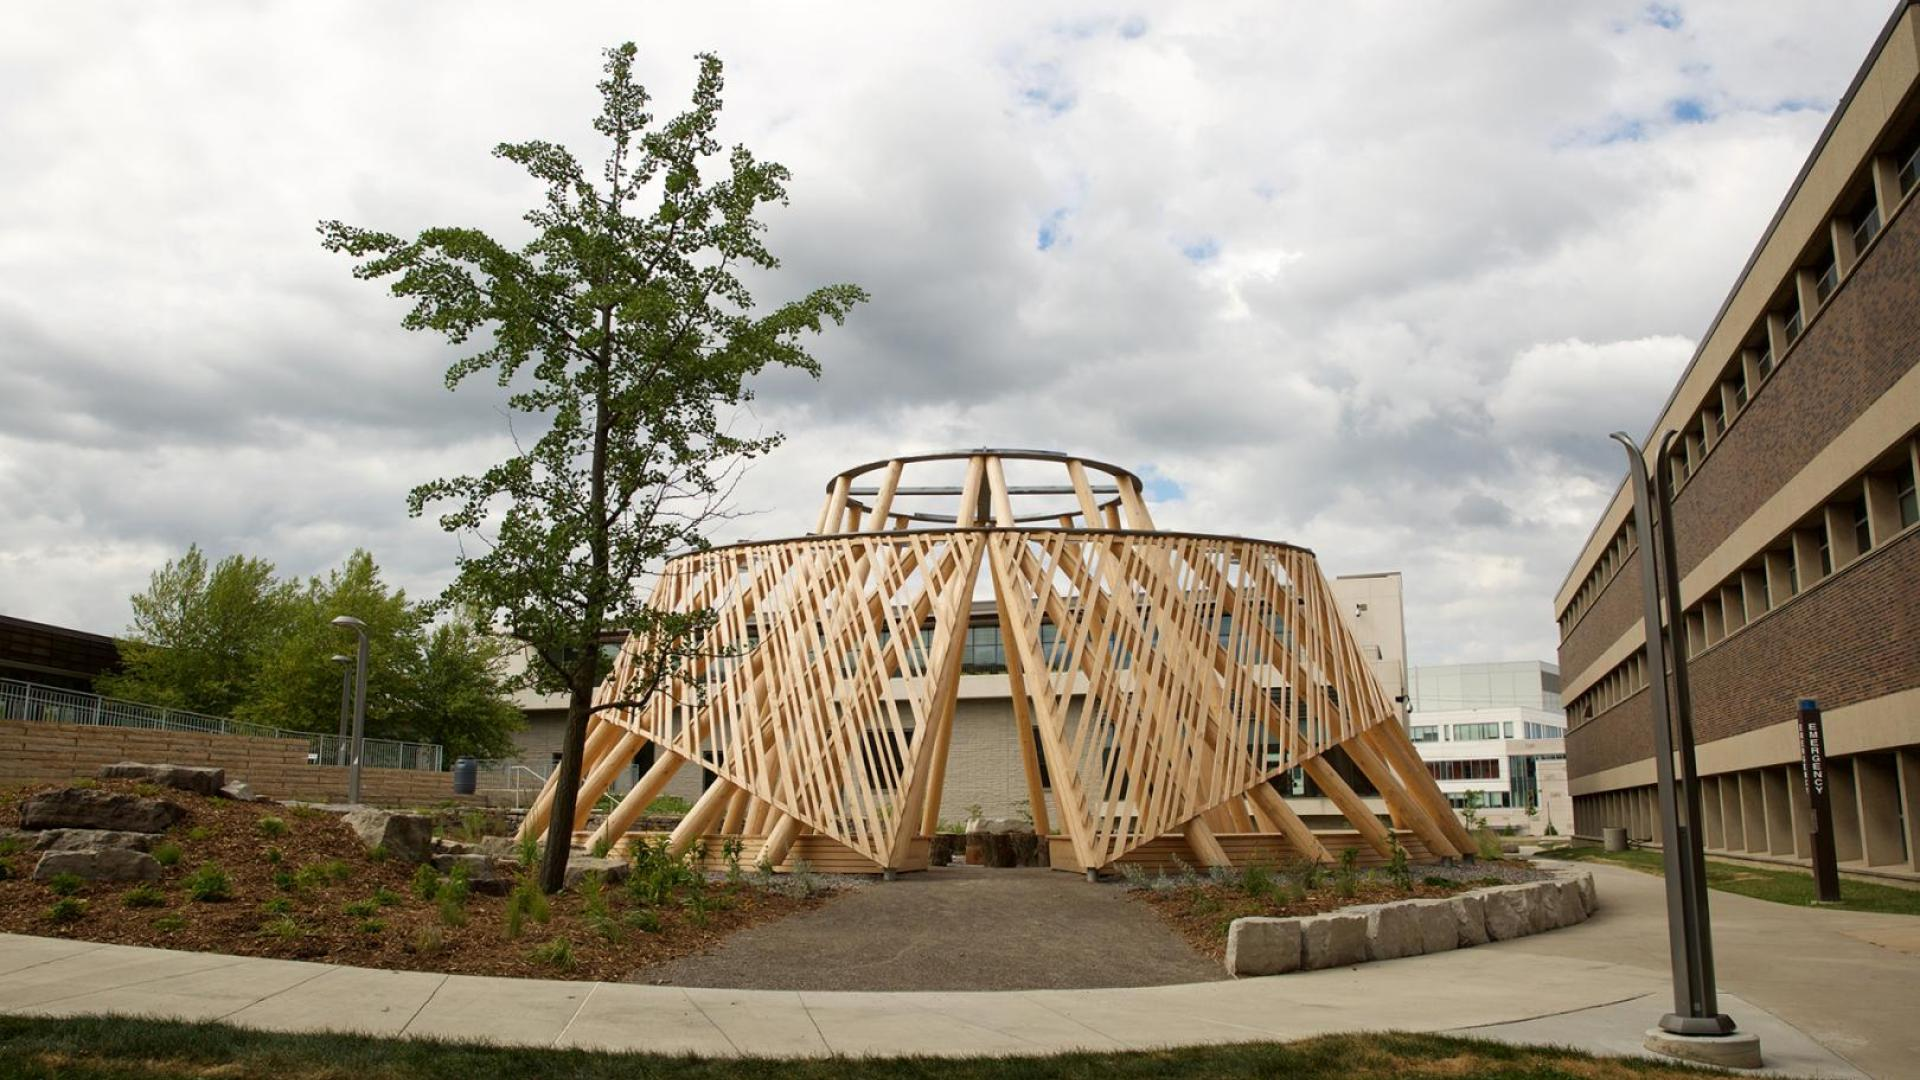 The Indigenous Gathering Place Igp Mohawk College